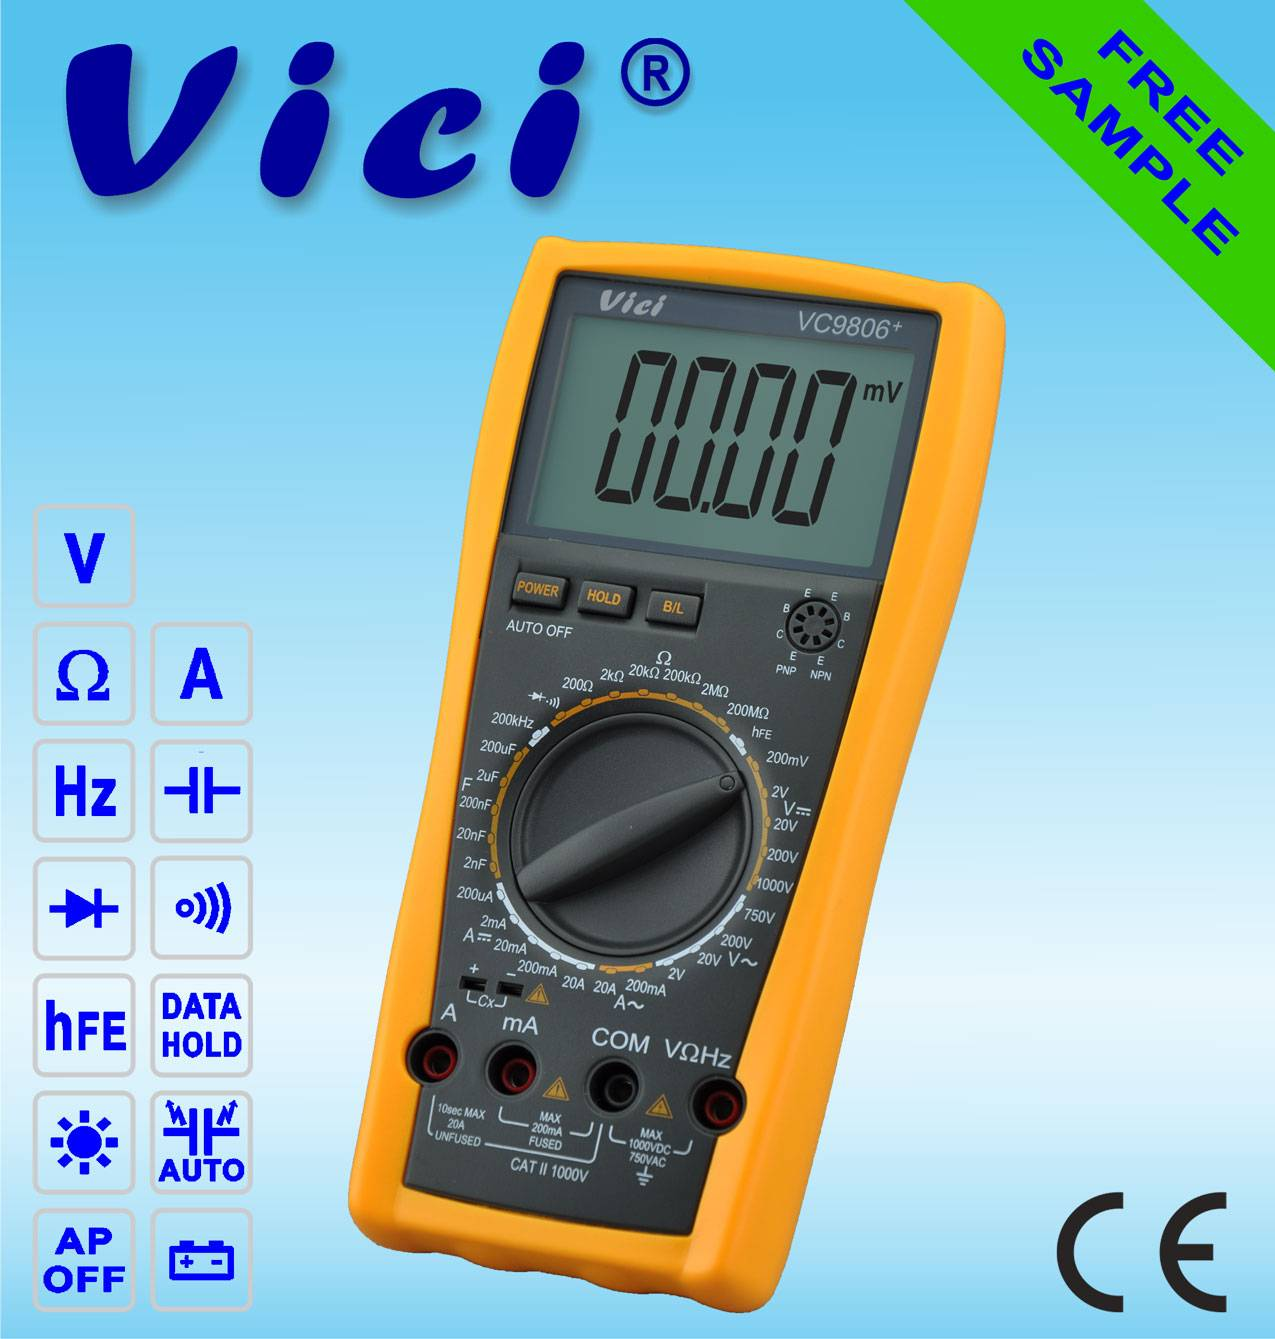 VC9806+  4 1/2  Portable digital multimeter